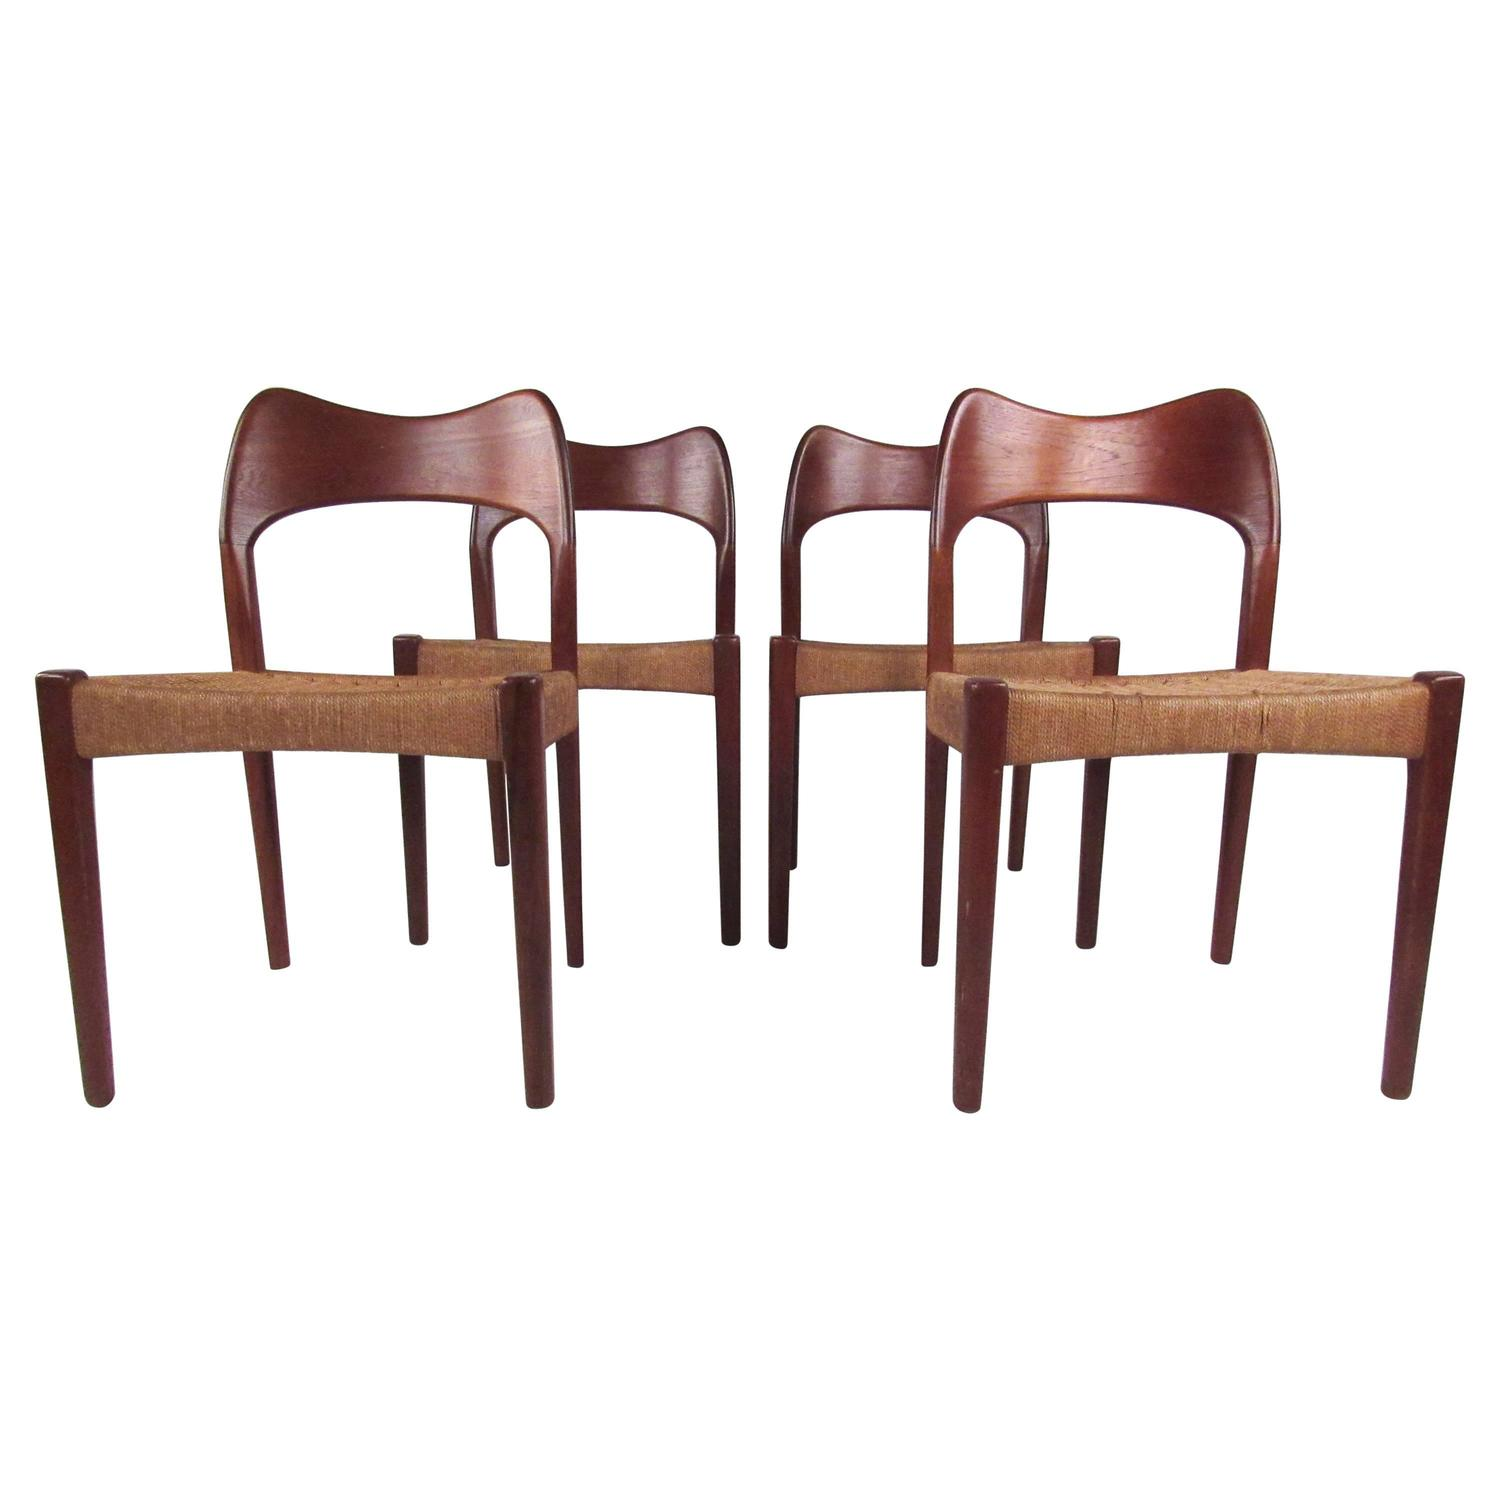 Mid Century Modern Teak And Papercord Dining Chairs In The